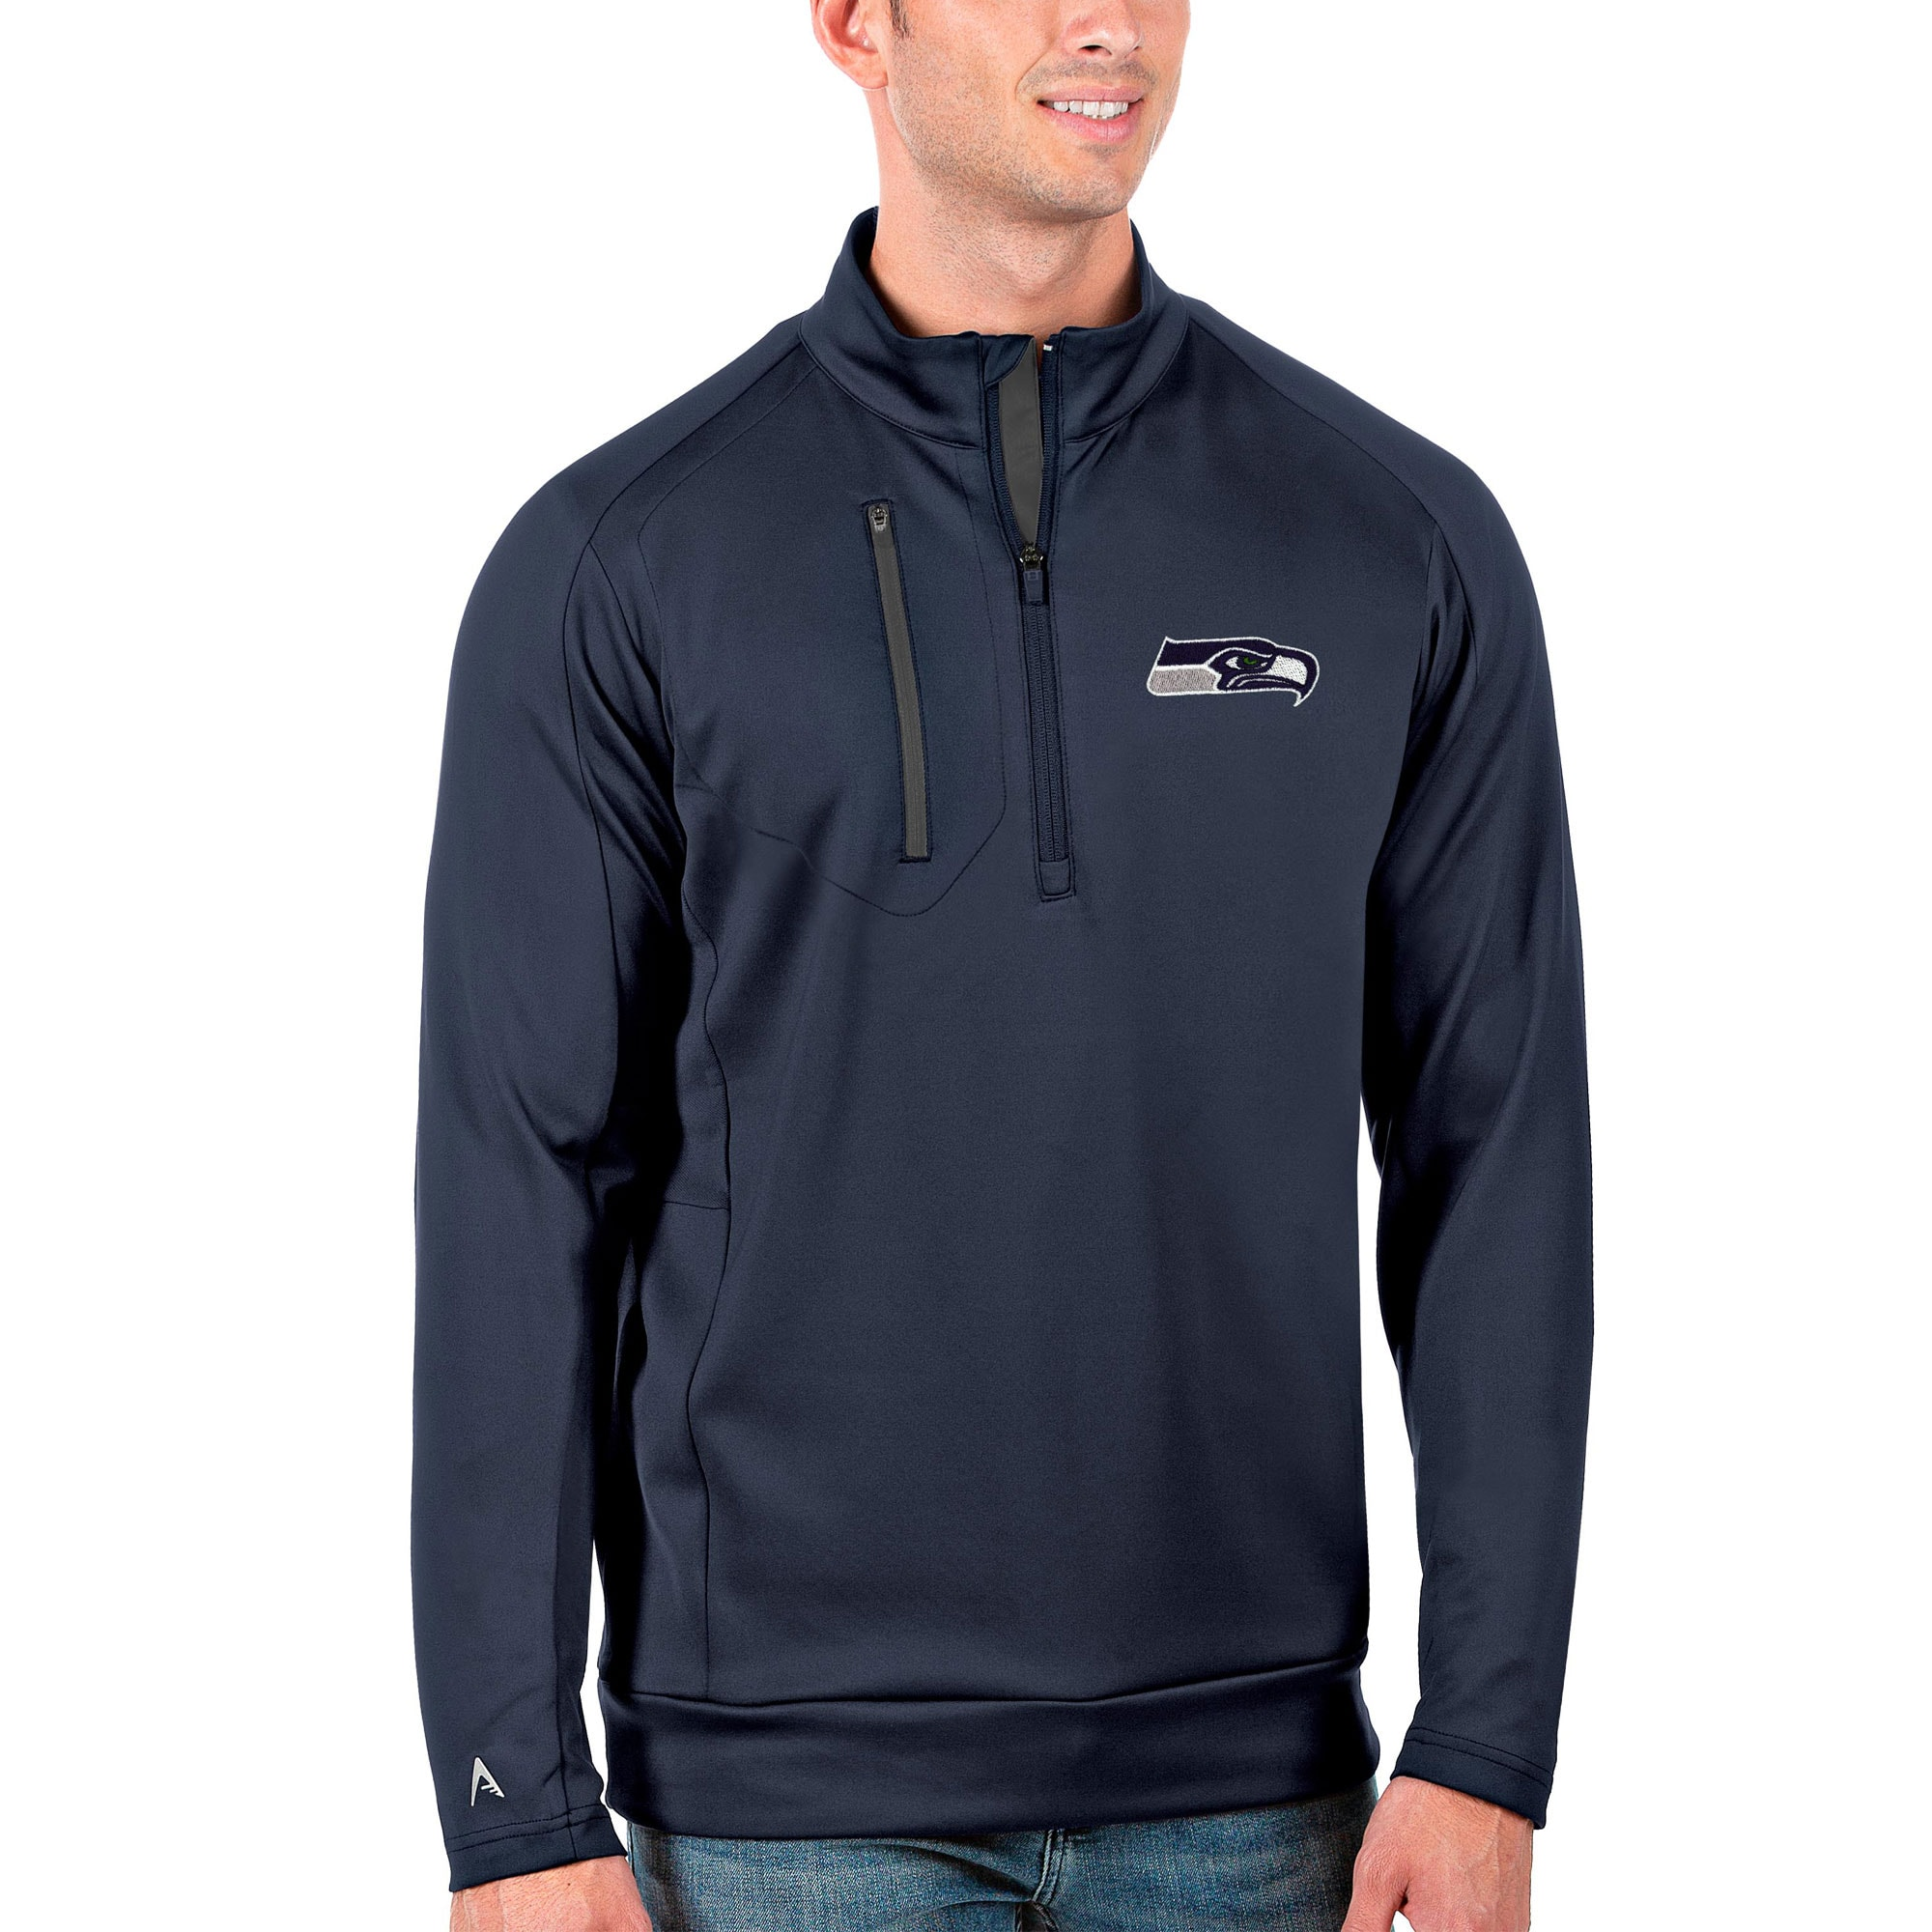 Seattle Seahawks Antigua Generation Quarter-Zip Pullover Jacket - Navy/Charcoal